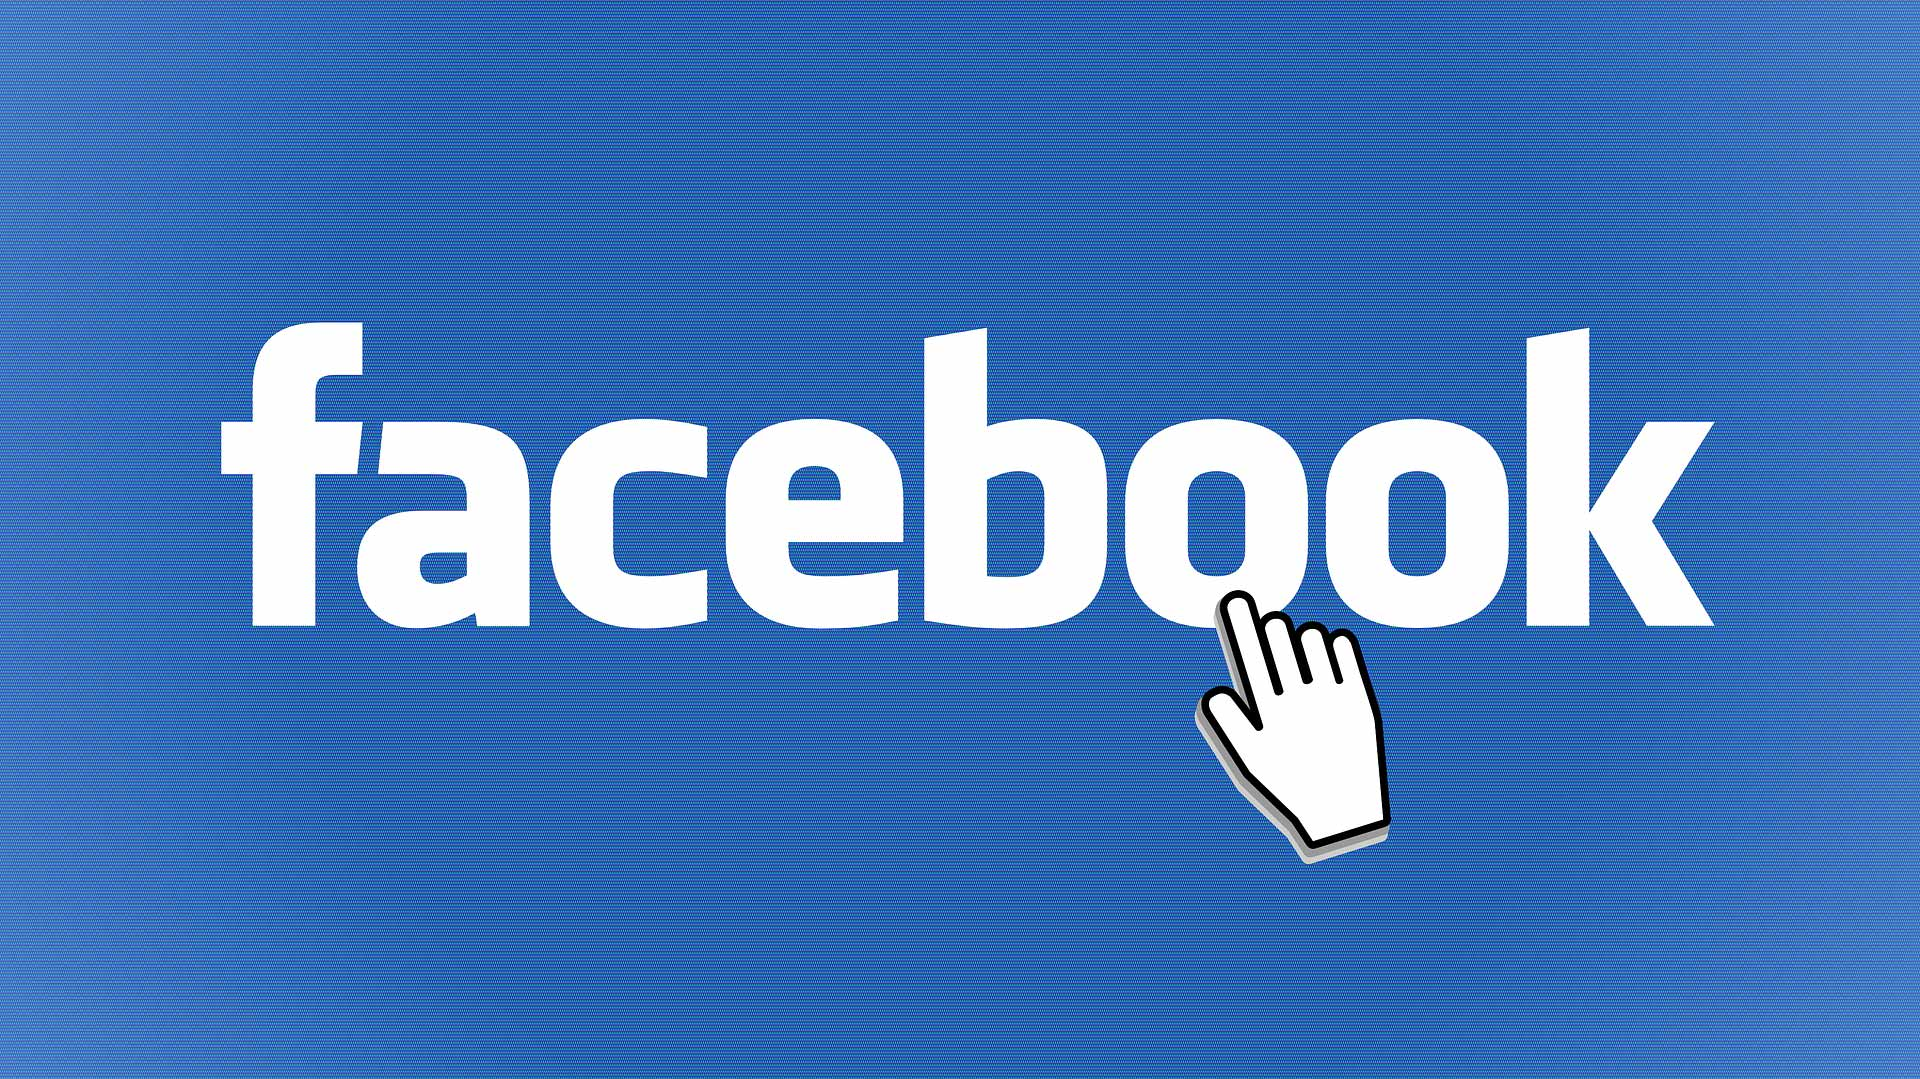 How To Advertise On Facebook in 2019 - #1 Free Guide To Facebook Ads!